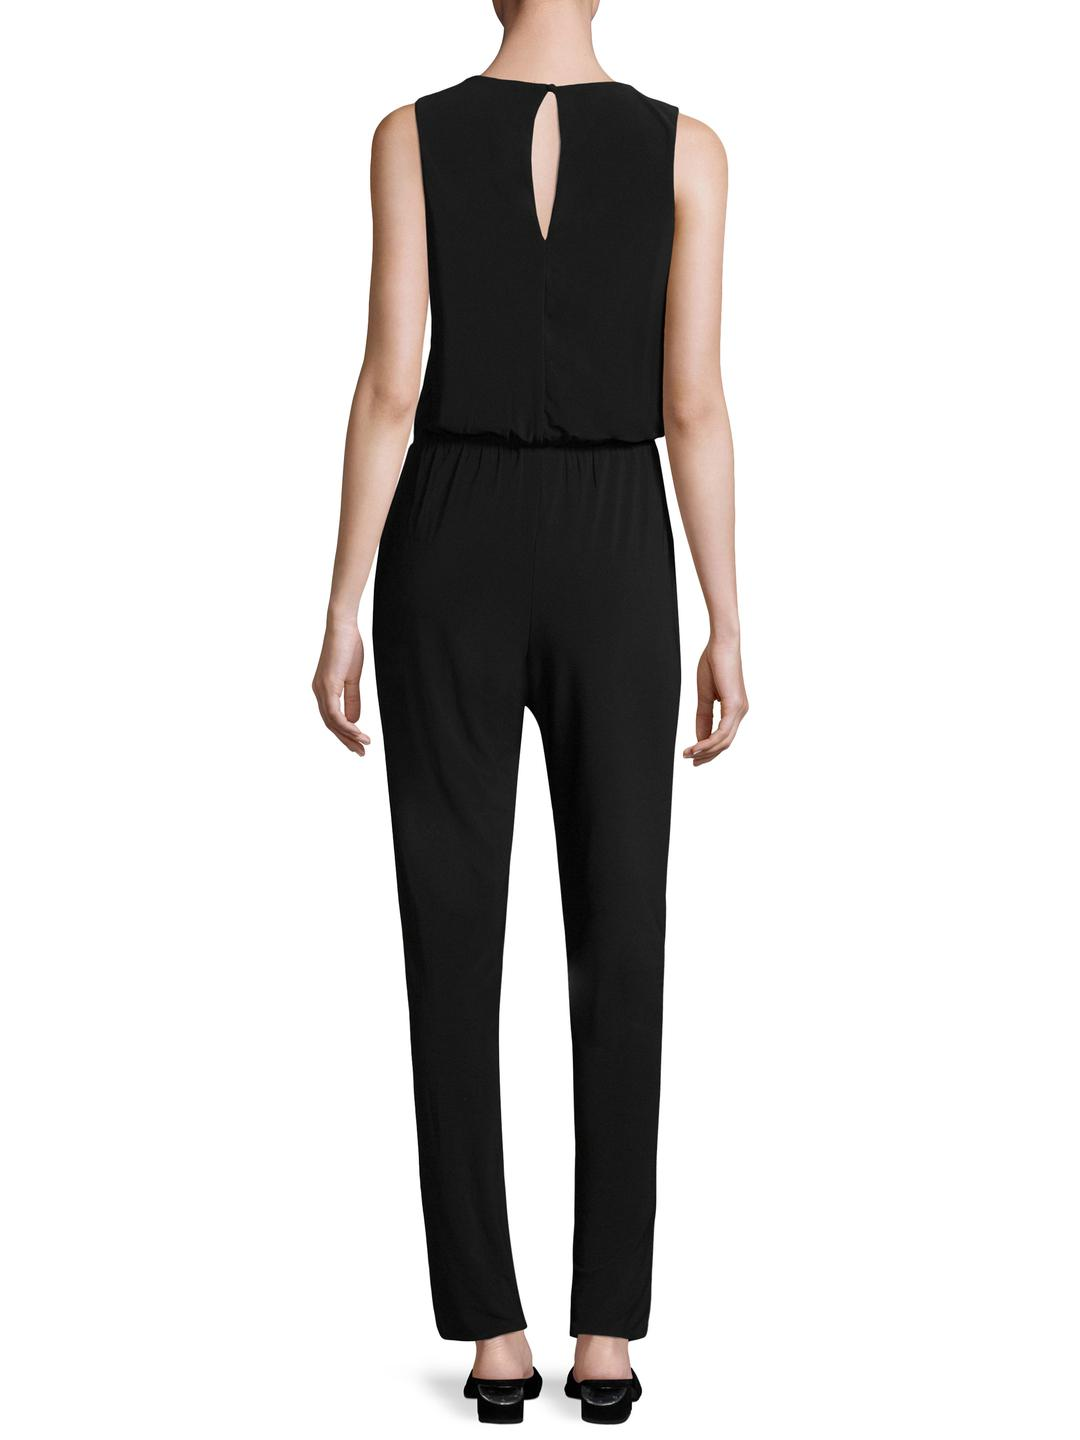 fe4d8fd249a Lyst - Laundry by Shelli Segal Lace Up Jersey Jumpsuit in Black